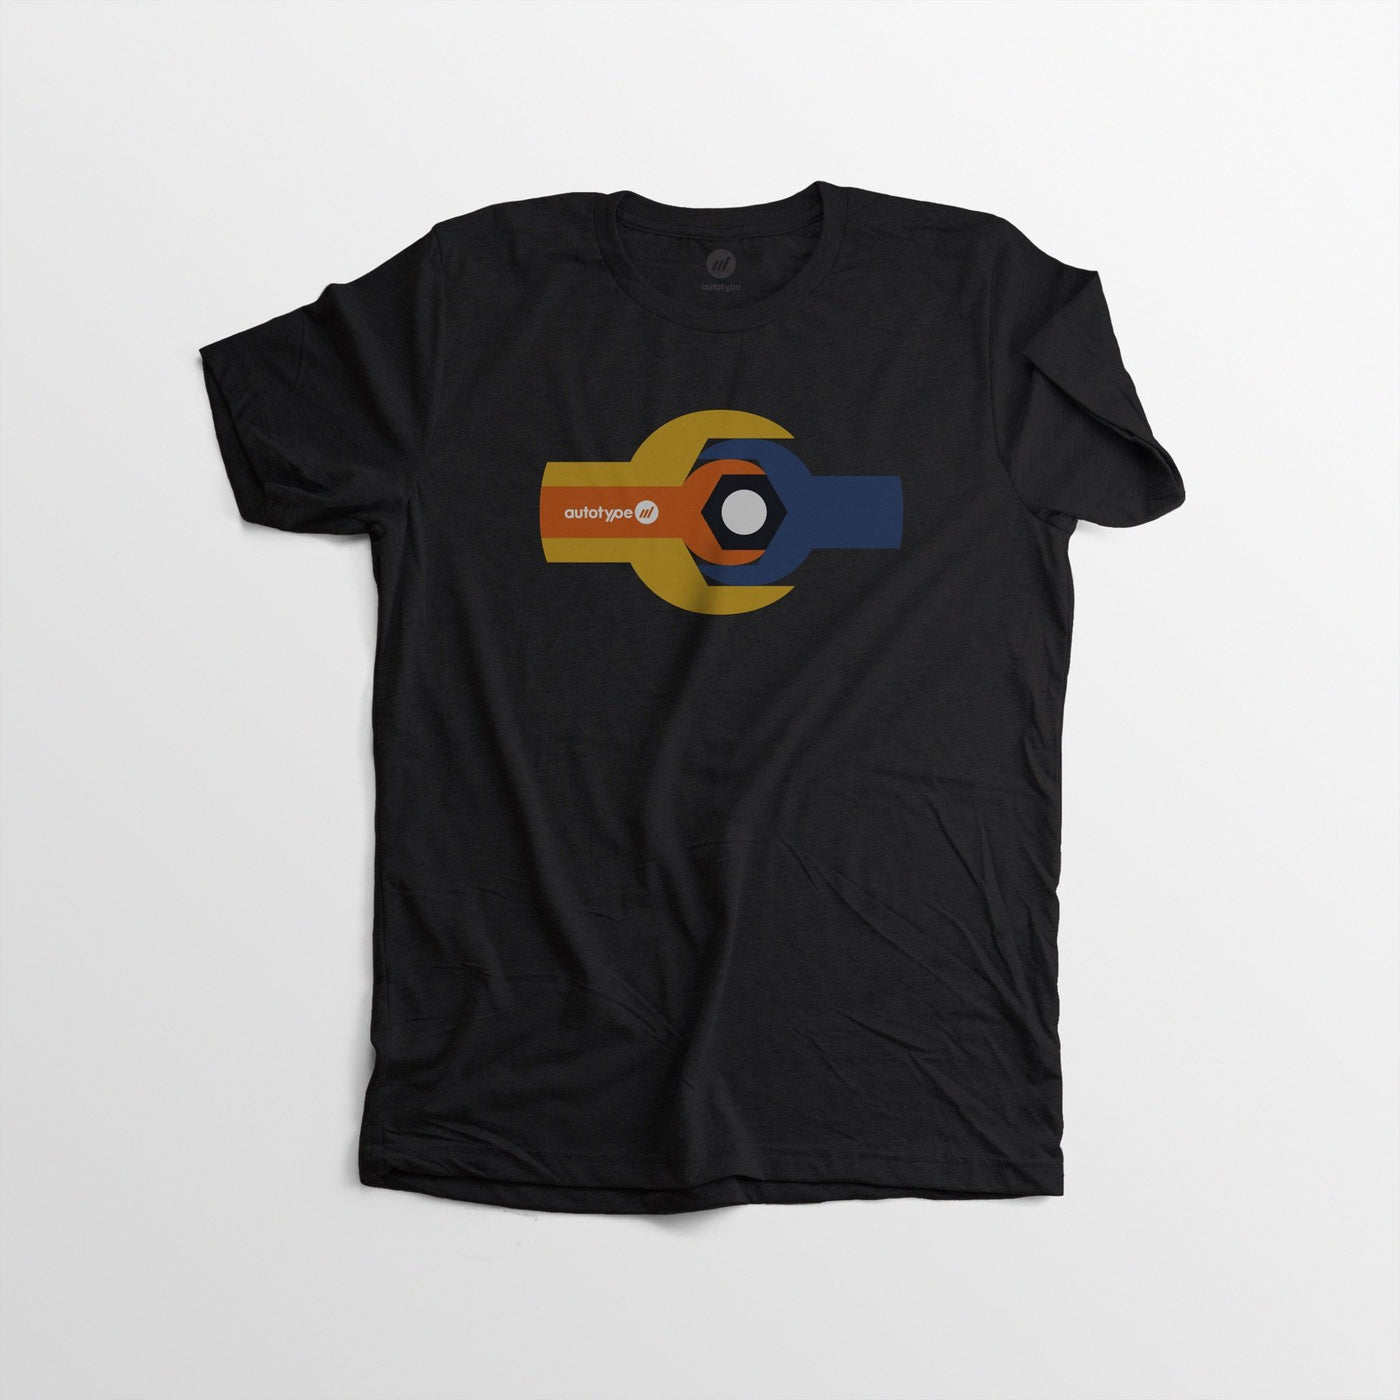 Men's Autotype Wrench Tee - Black